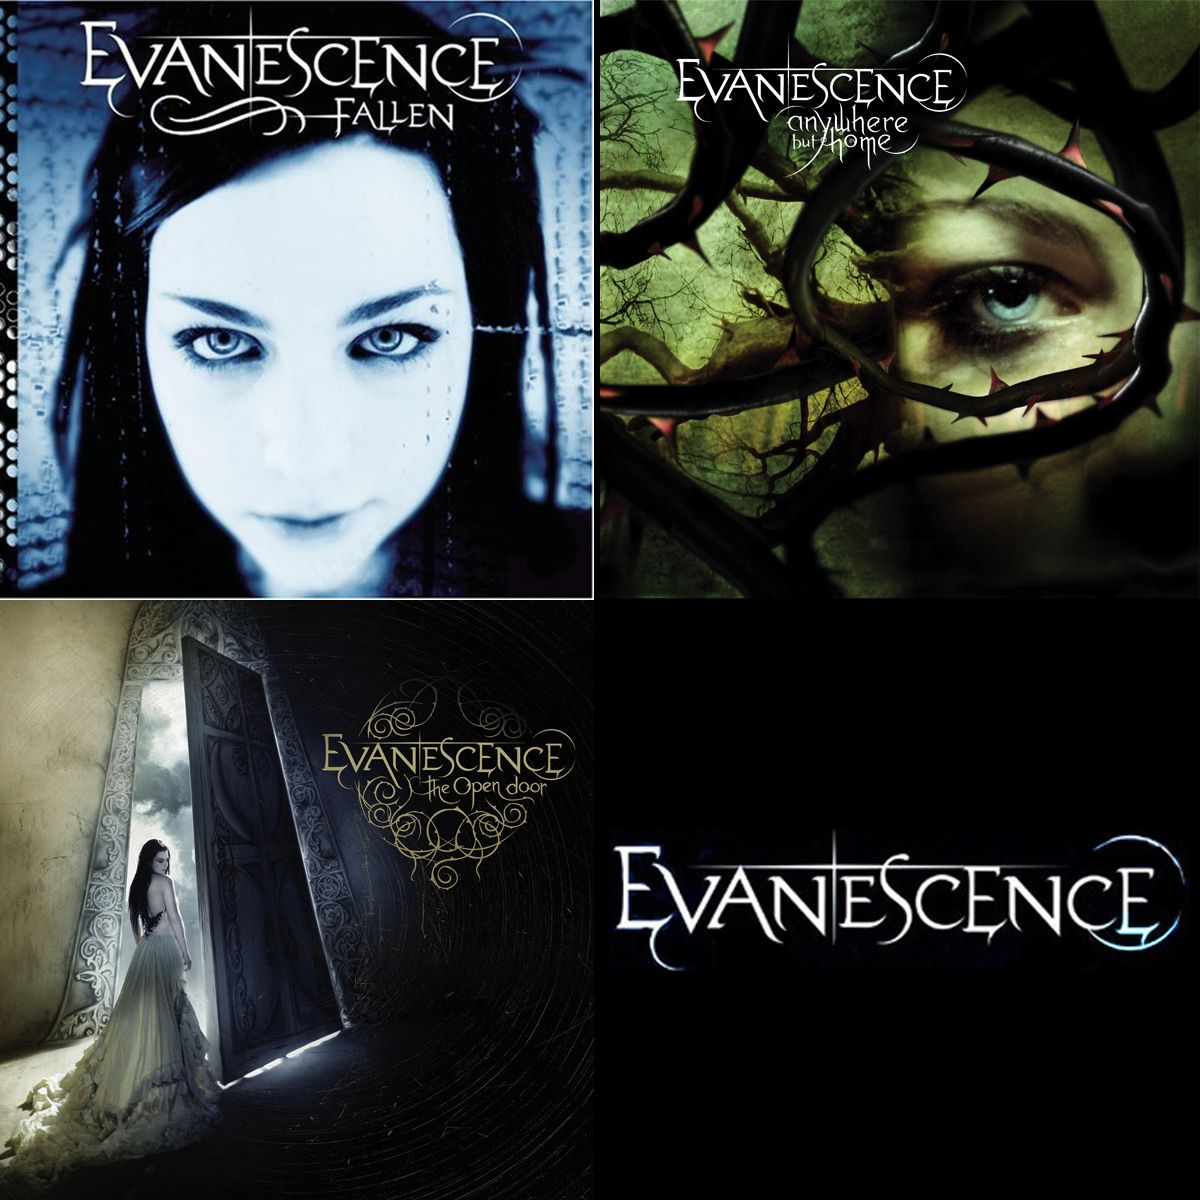 evanescence complete discography download